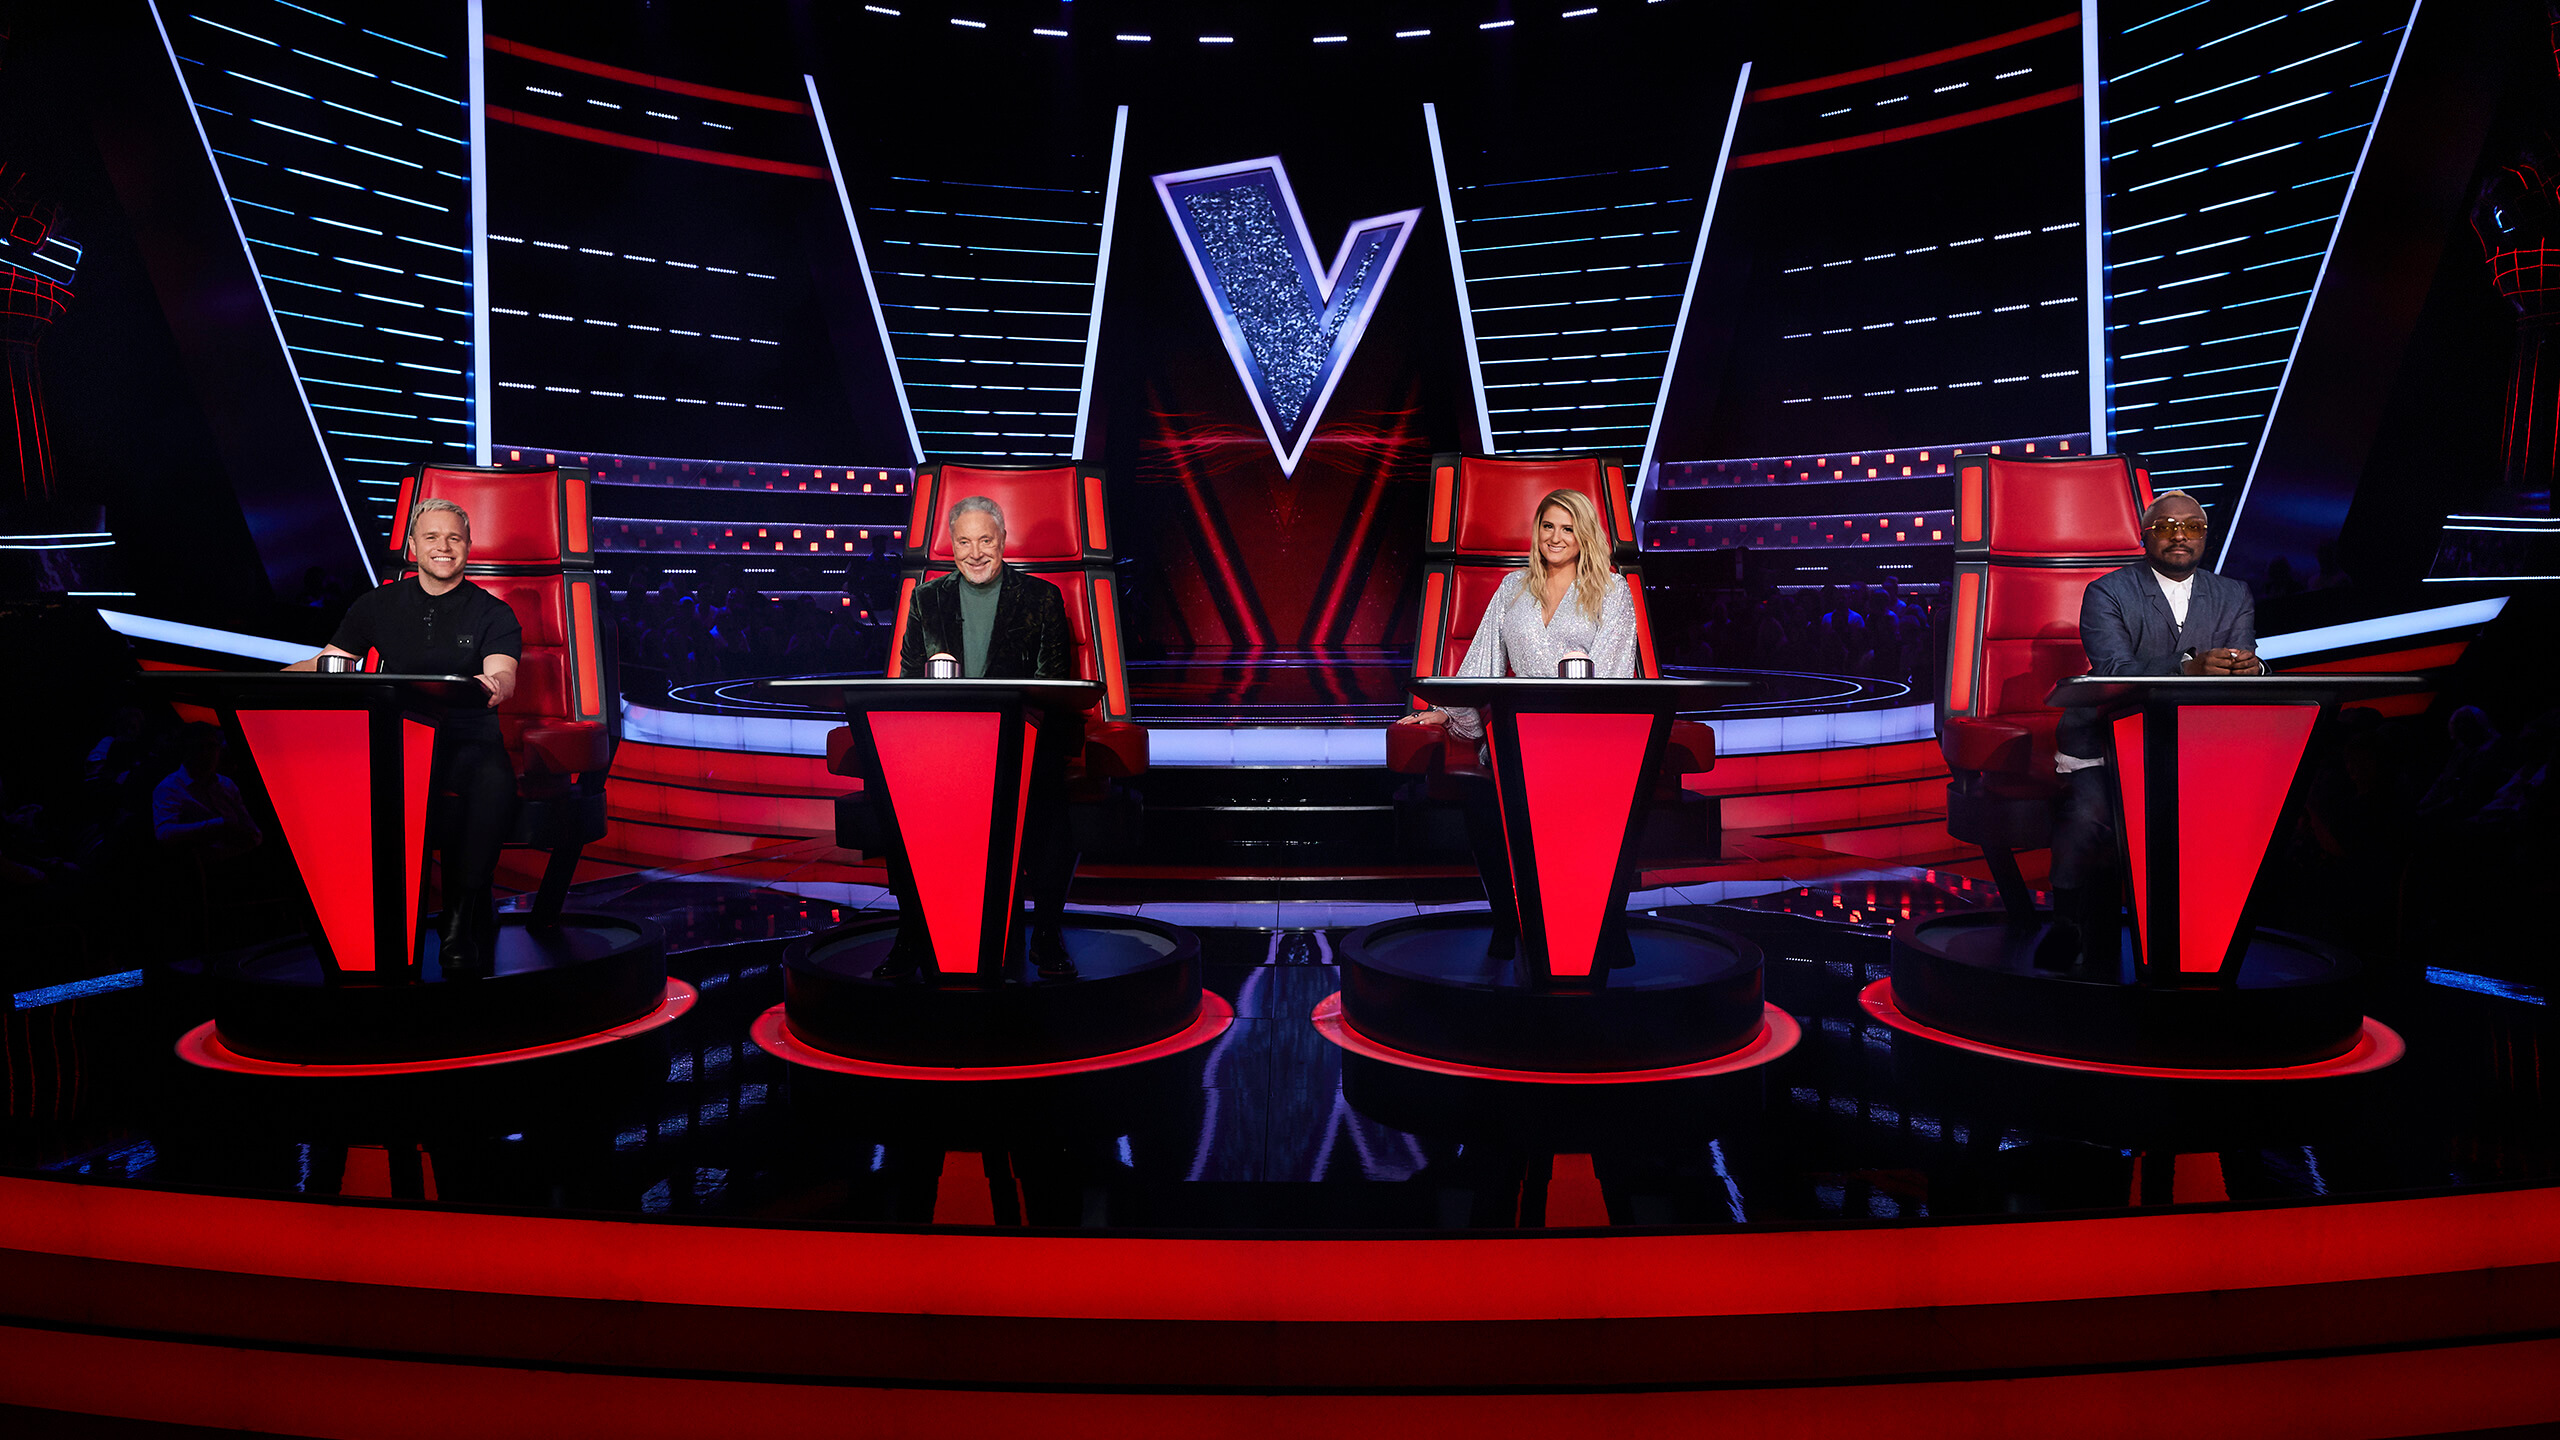 The Voice - panel of four judges